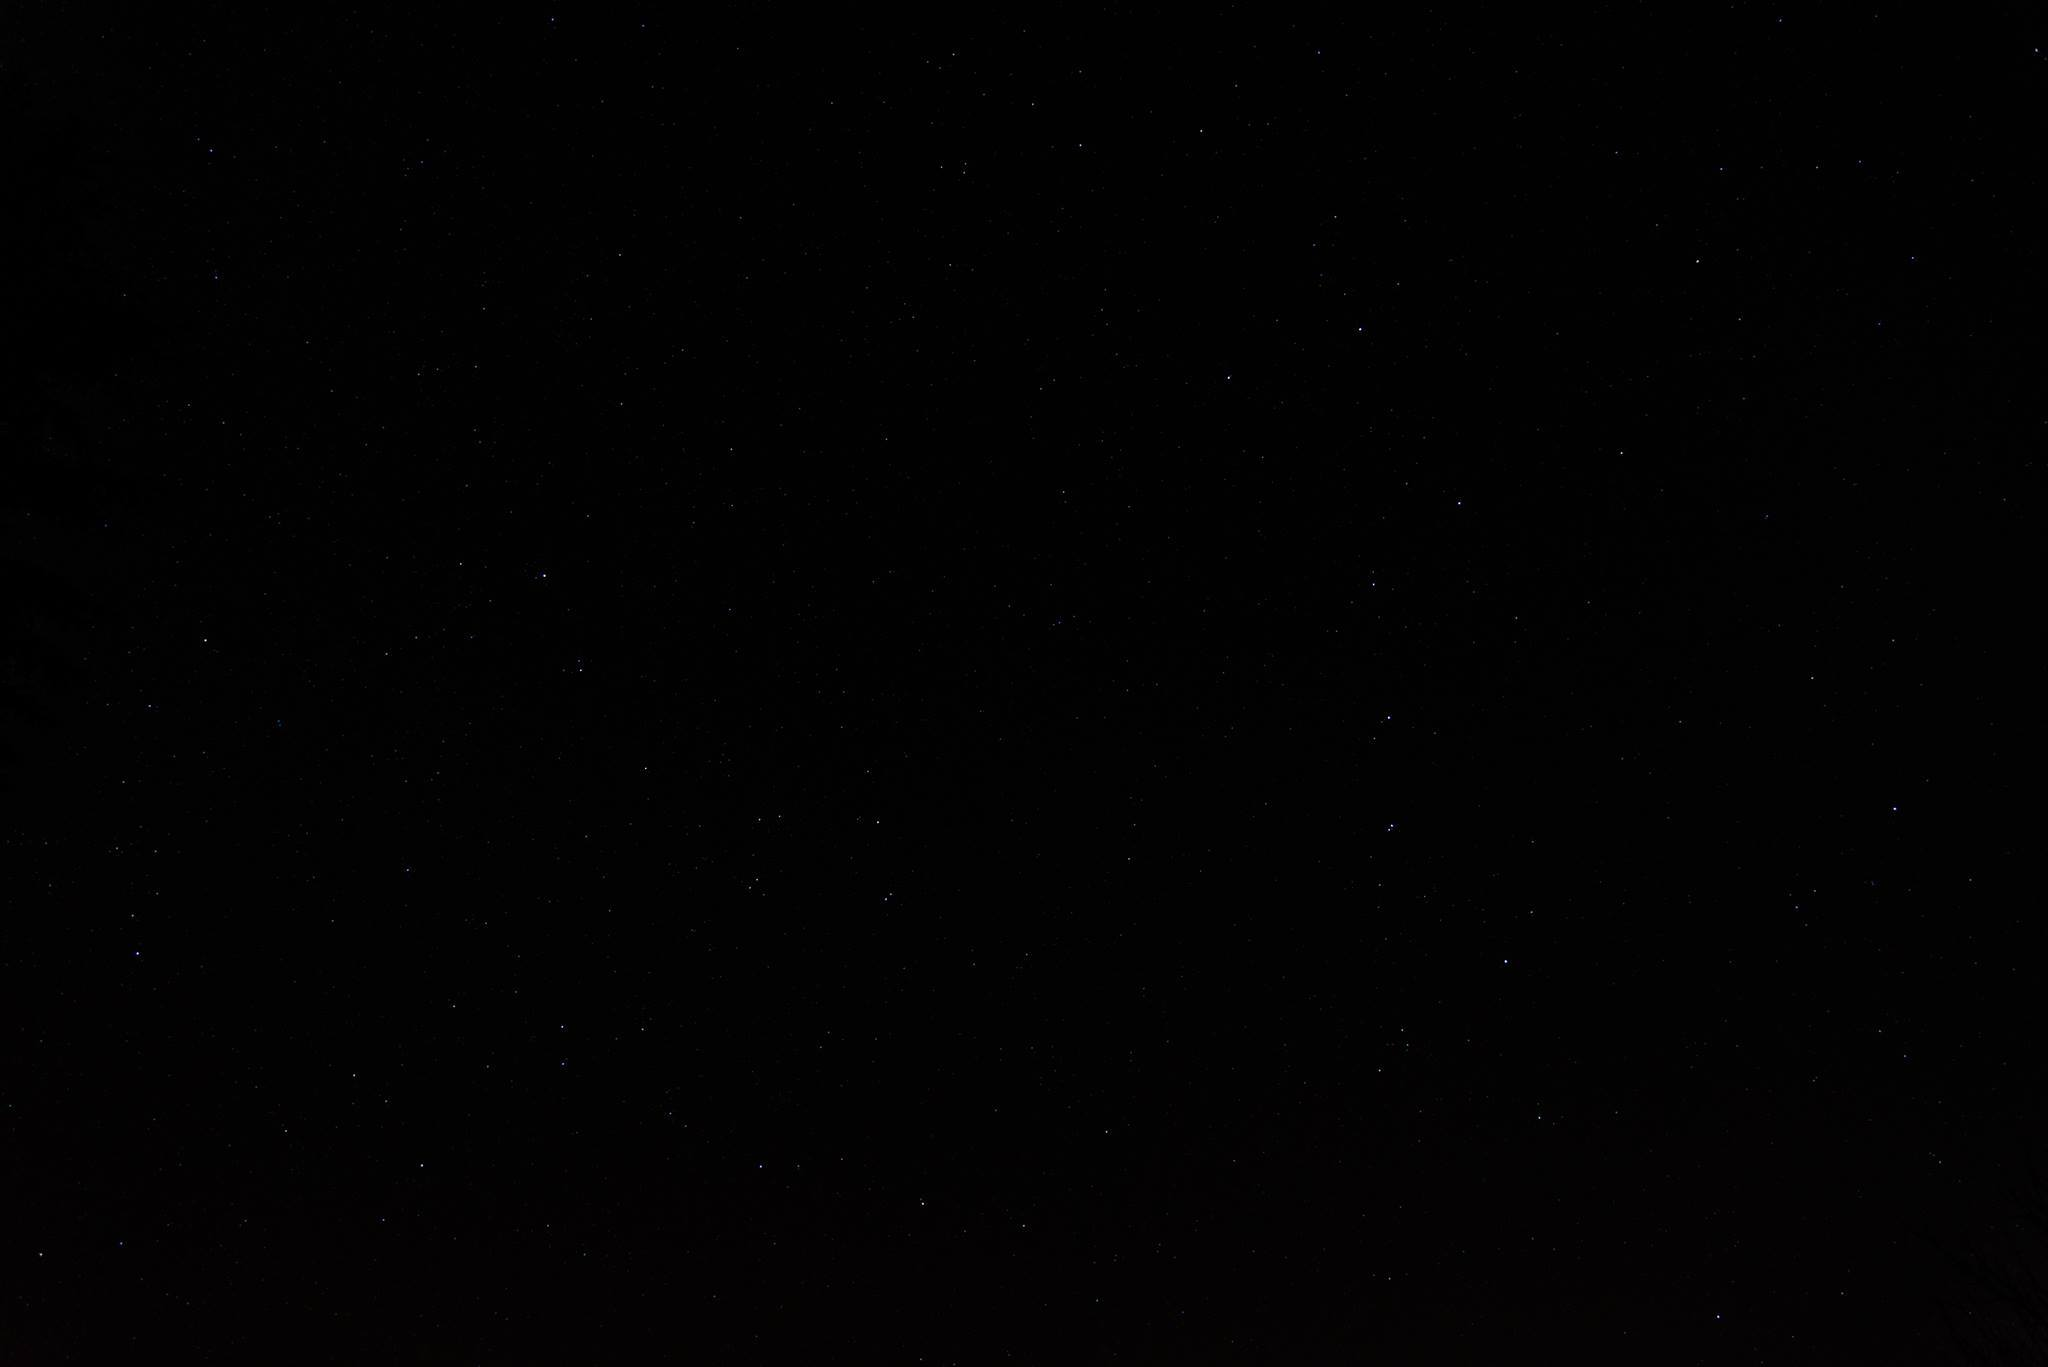 Night sky polaris